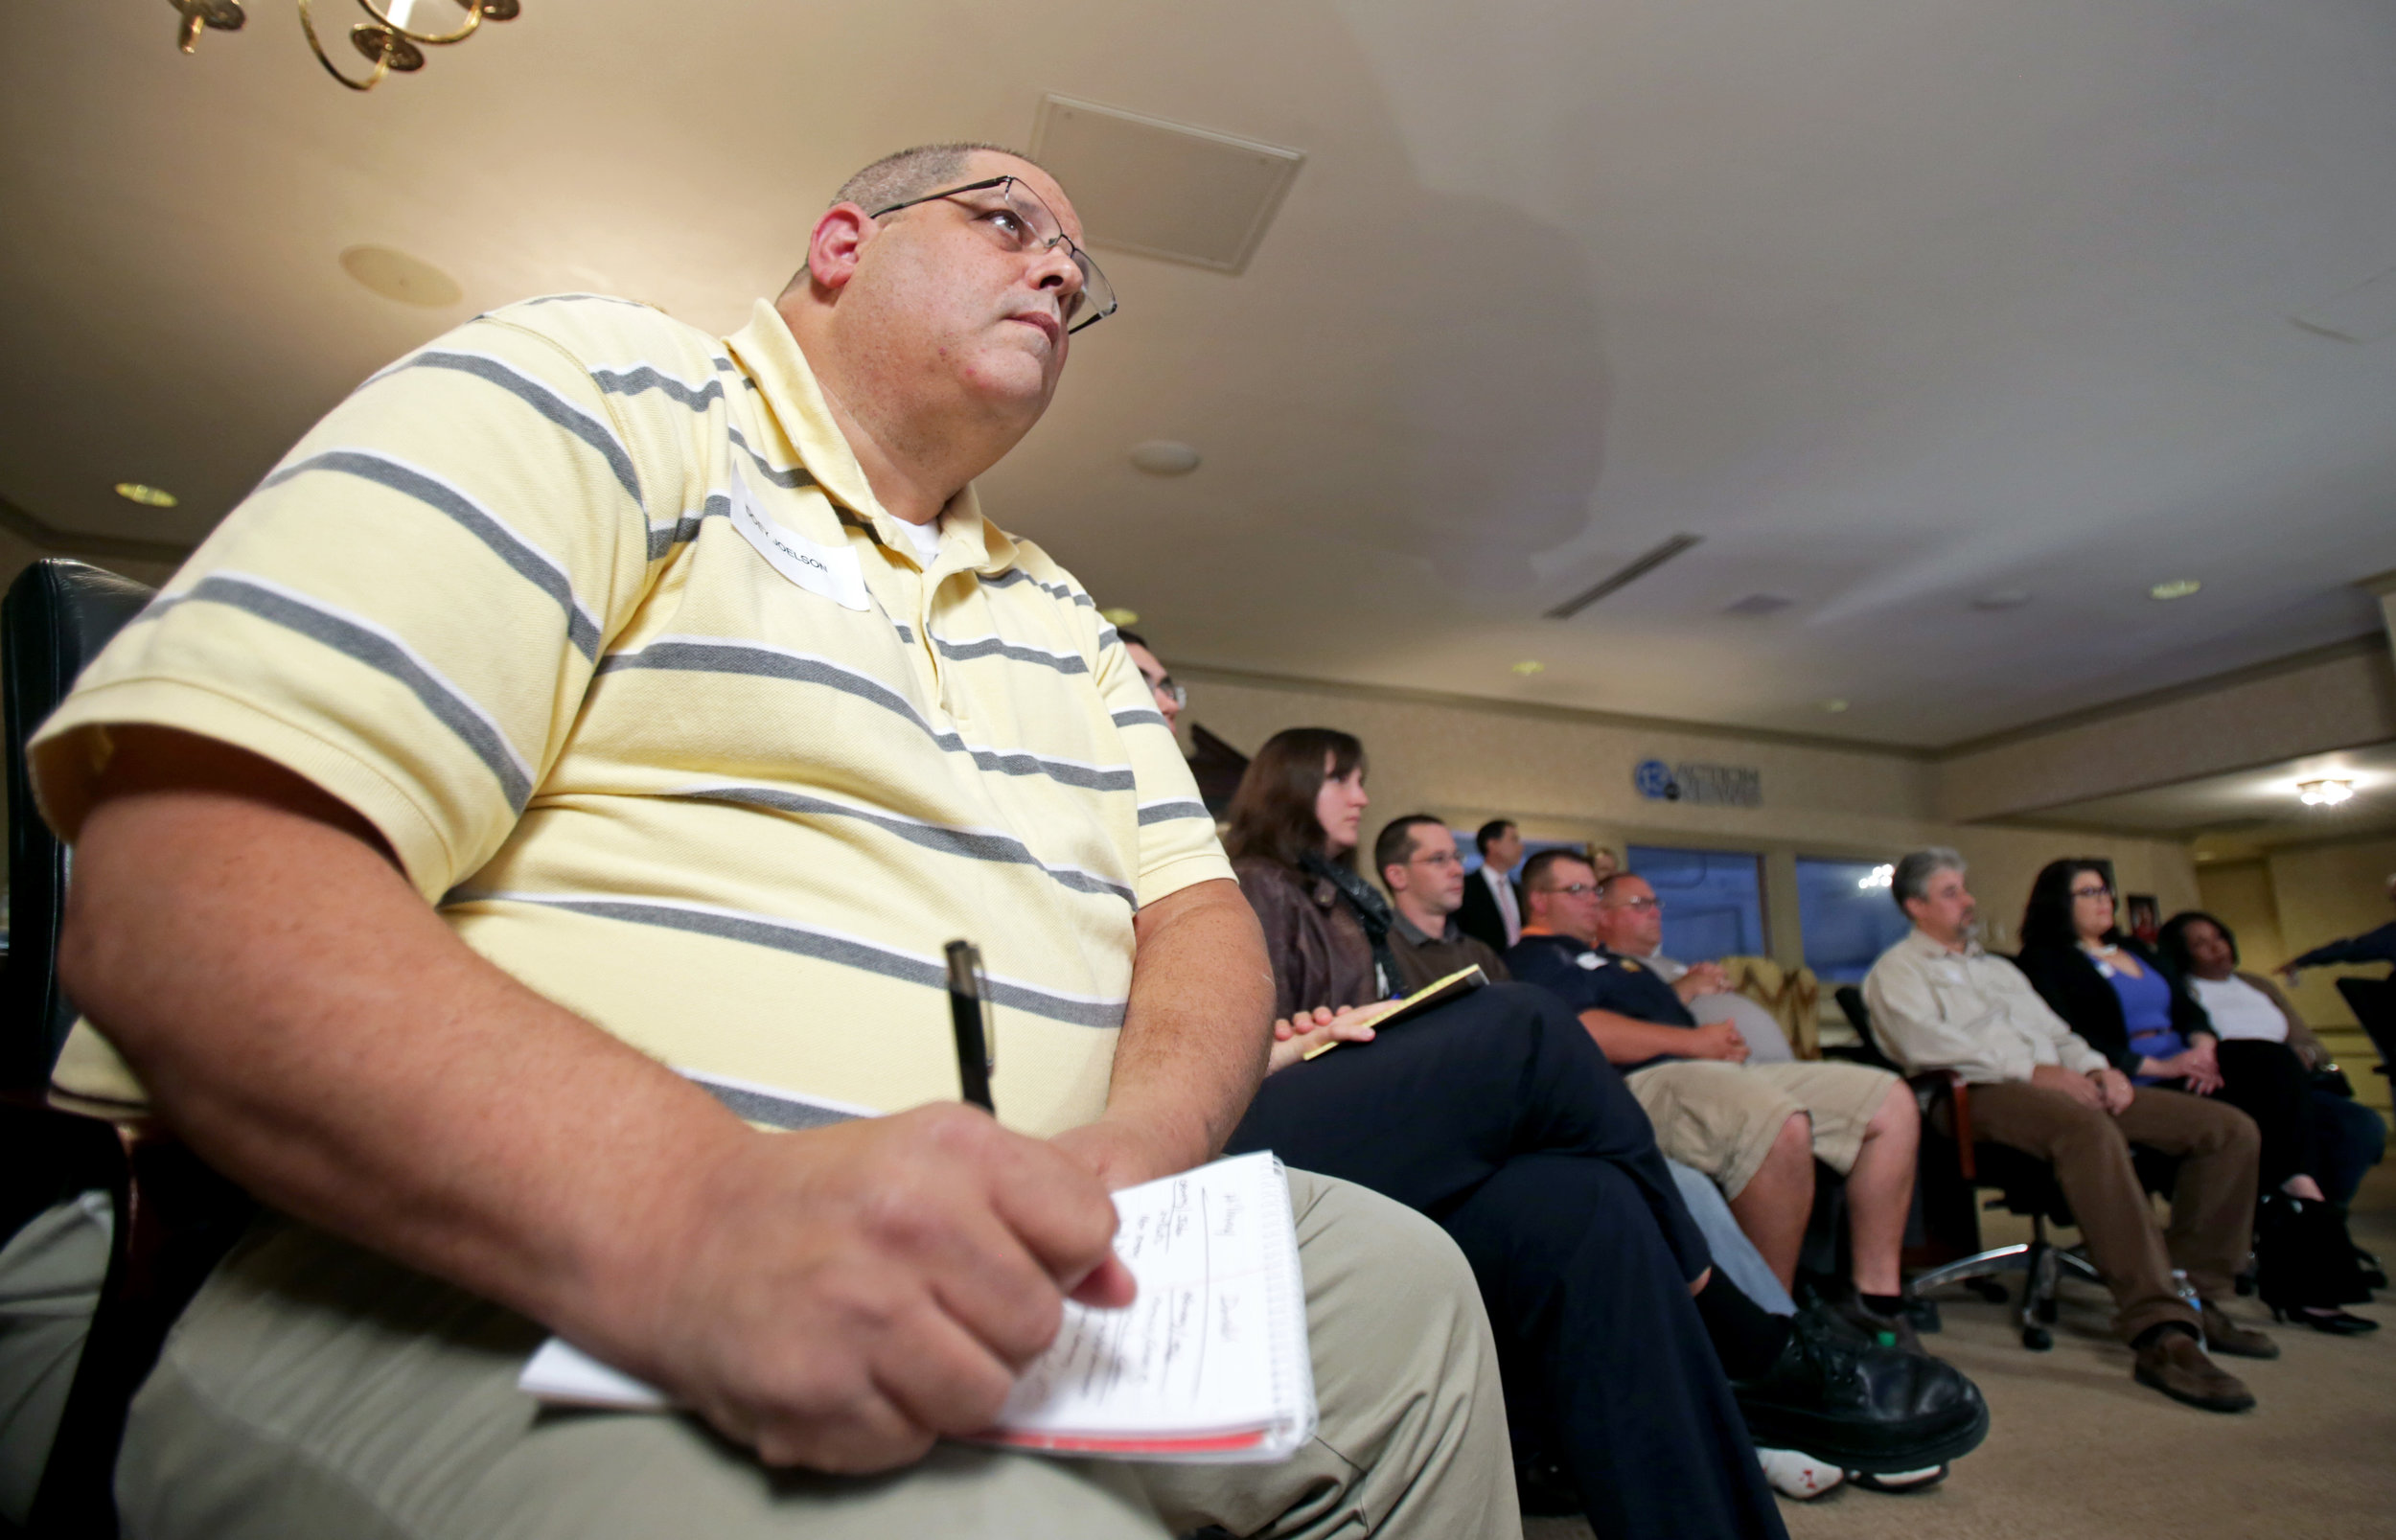 Undecided voter Doev Joelson of Sylvania takes notes on each of the candidates' points during a presidential debate viewing at the WTVG studio in Toledo on Monday, Sept. 26, 2016.